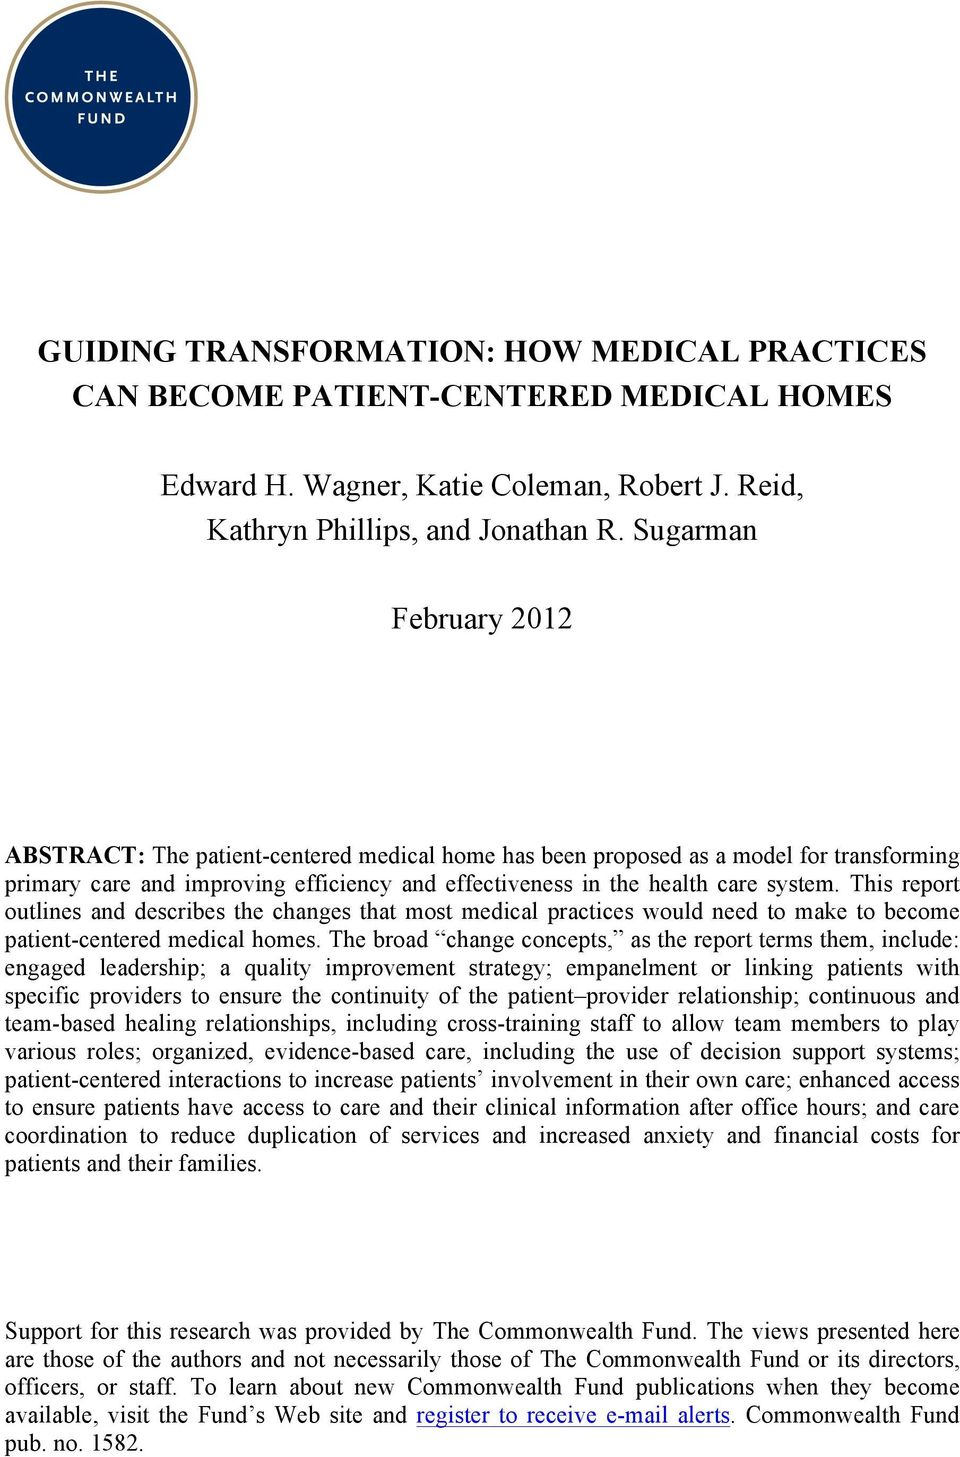 This report outlines and describes the changes that most medical practices would need to make to become patient-centered medical homes.